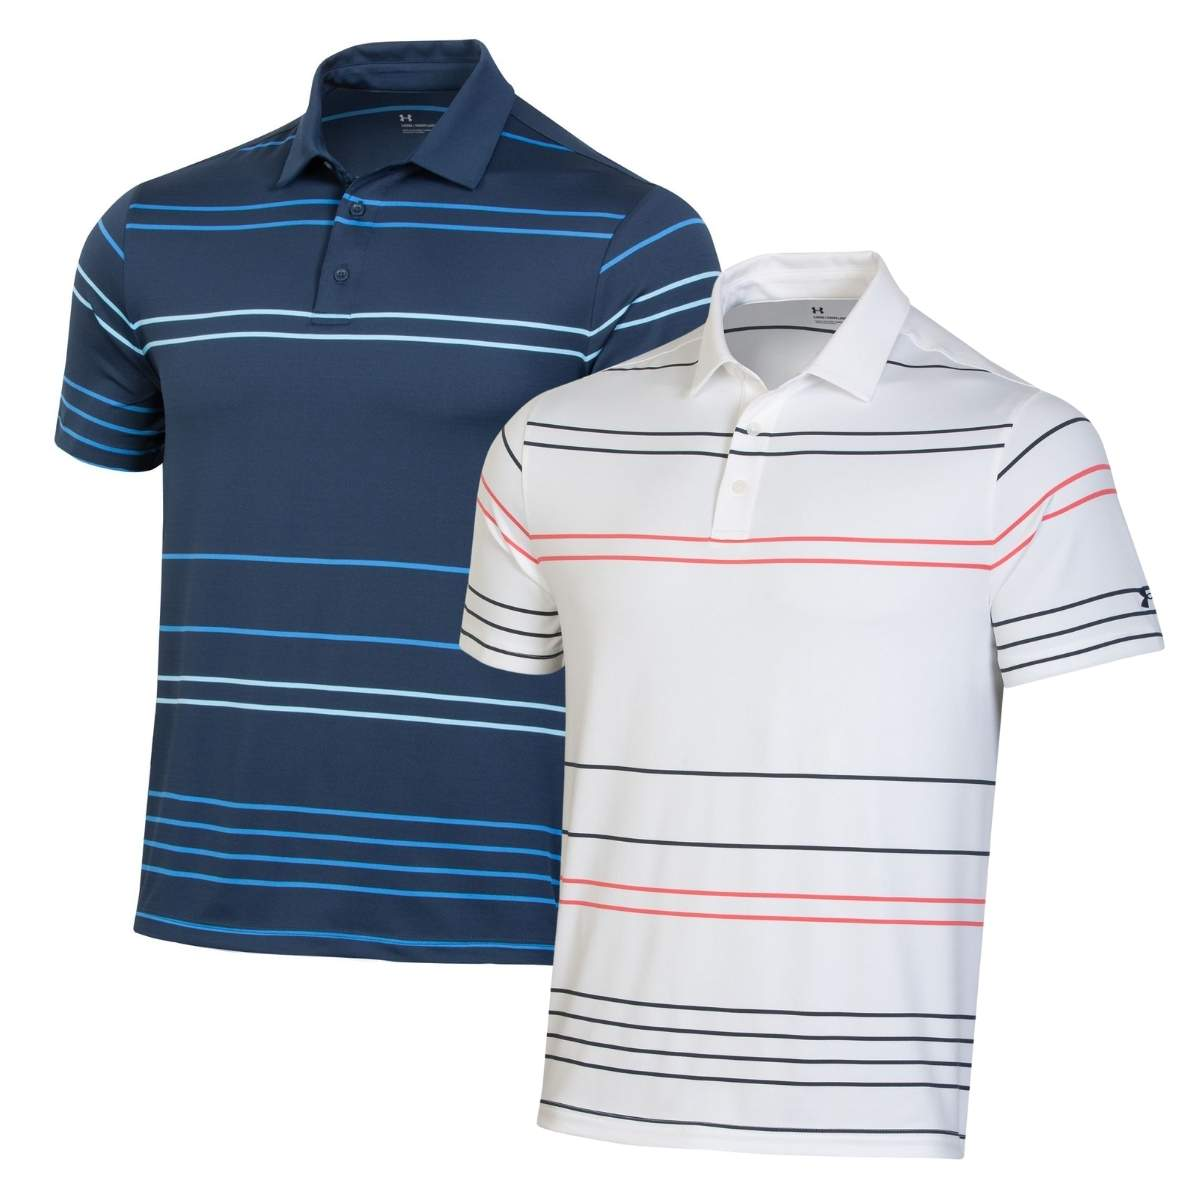 Under Armour Men's 2021 Playoff 2.0 Pitch Stripe Polo